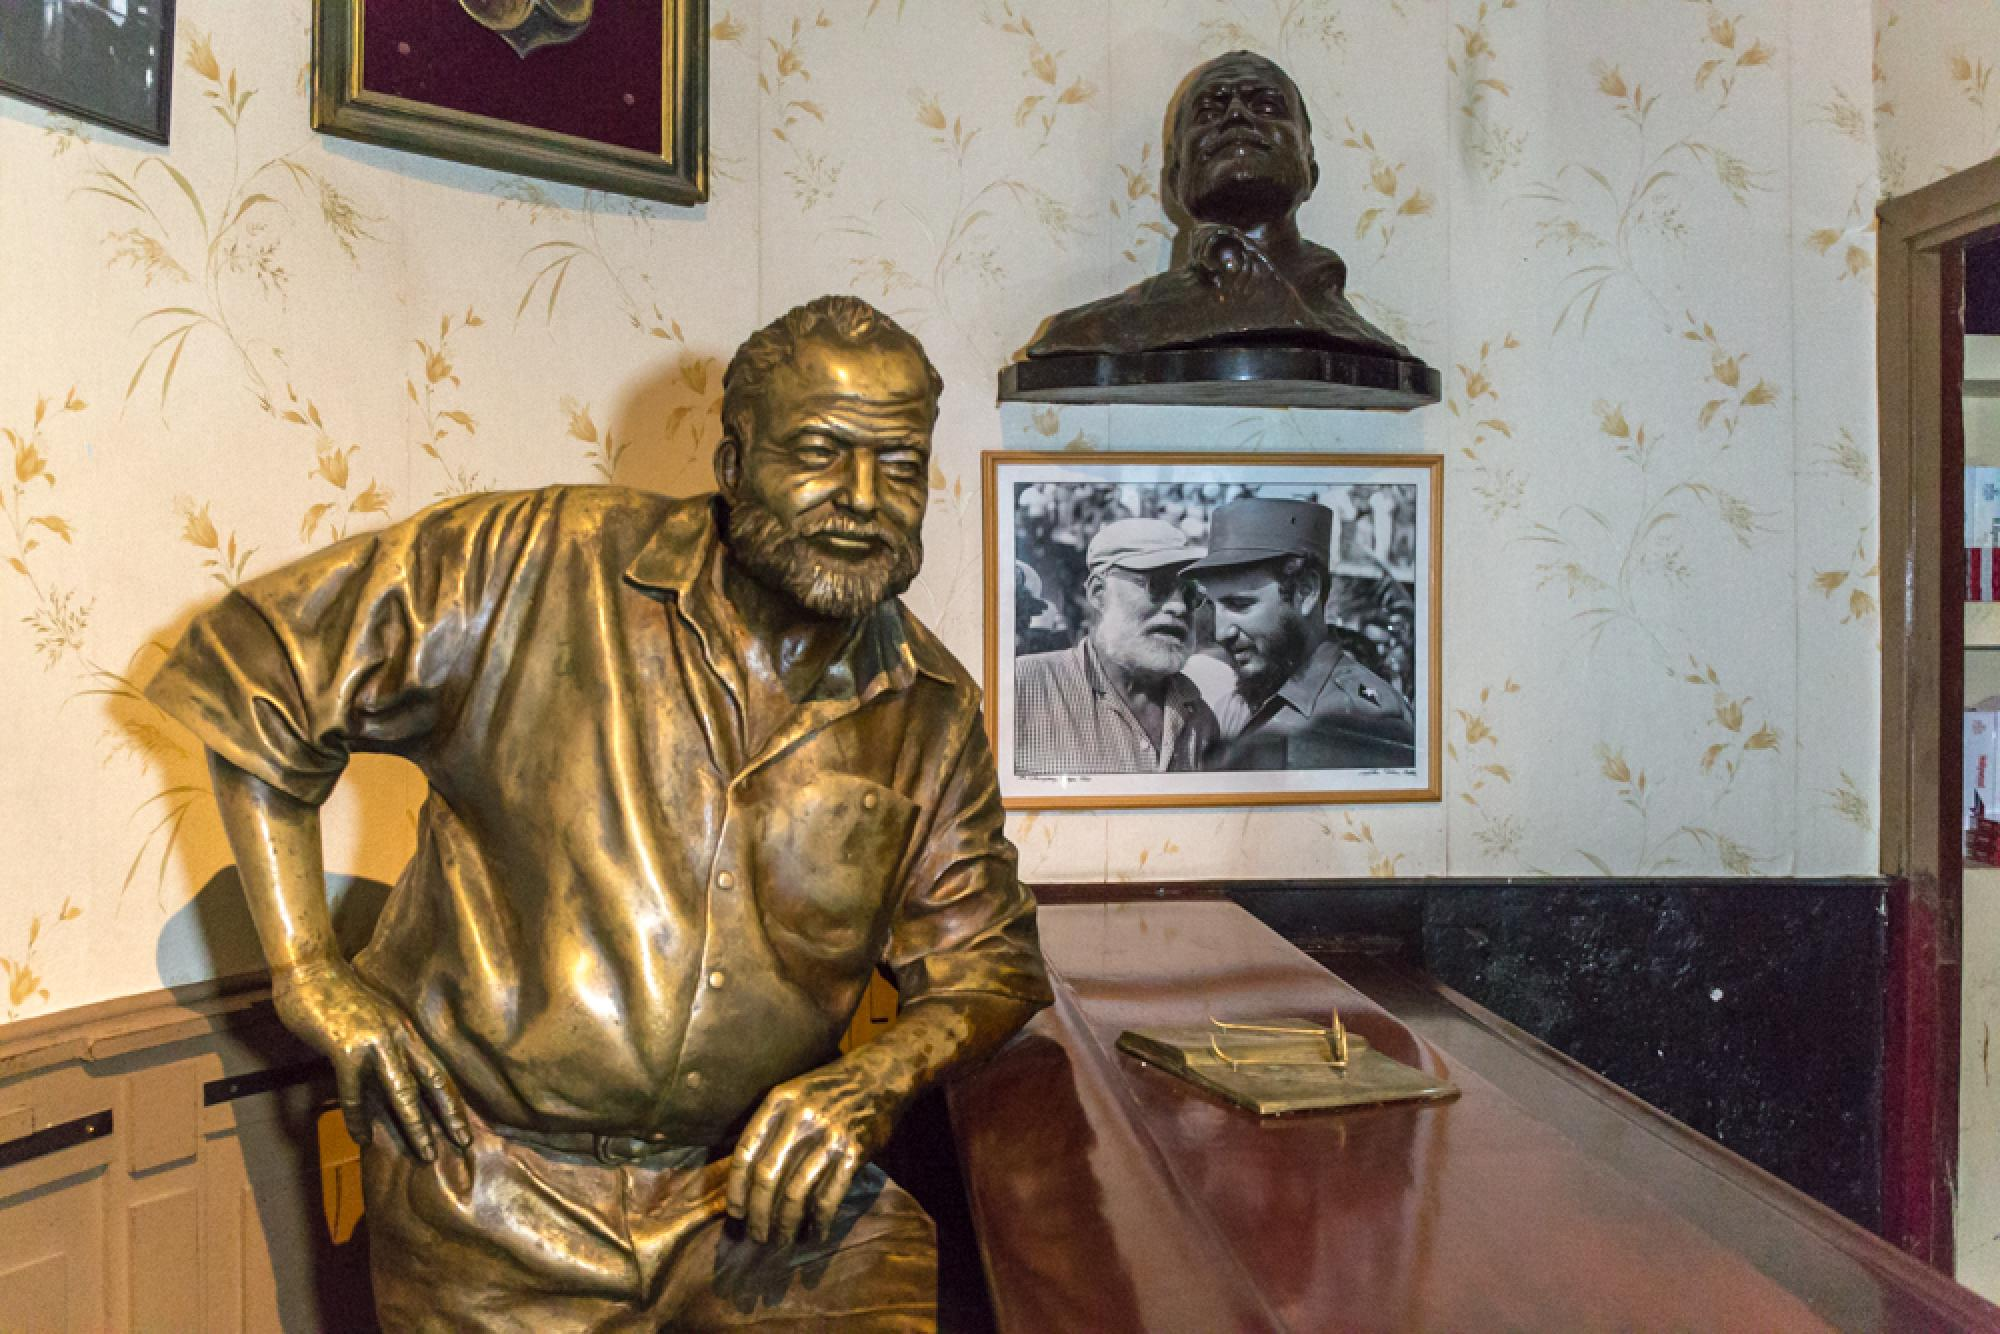 On the trail of Hemingway in Cuba